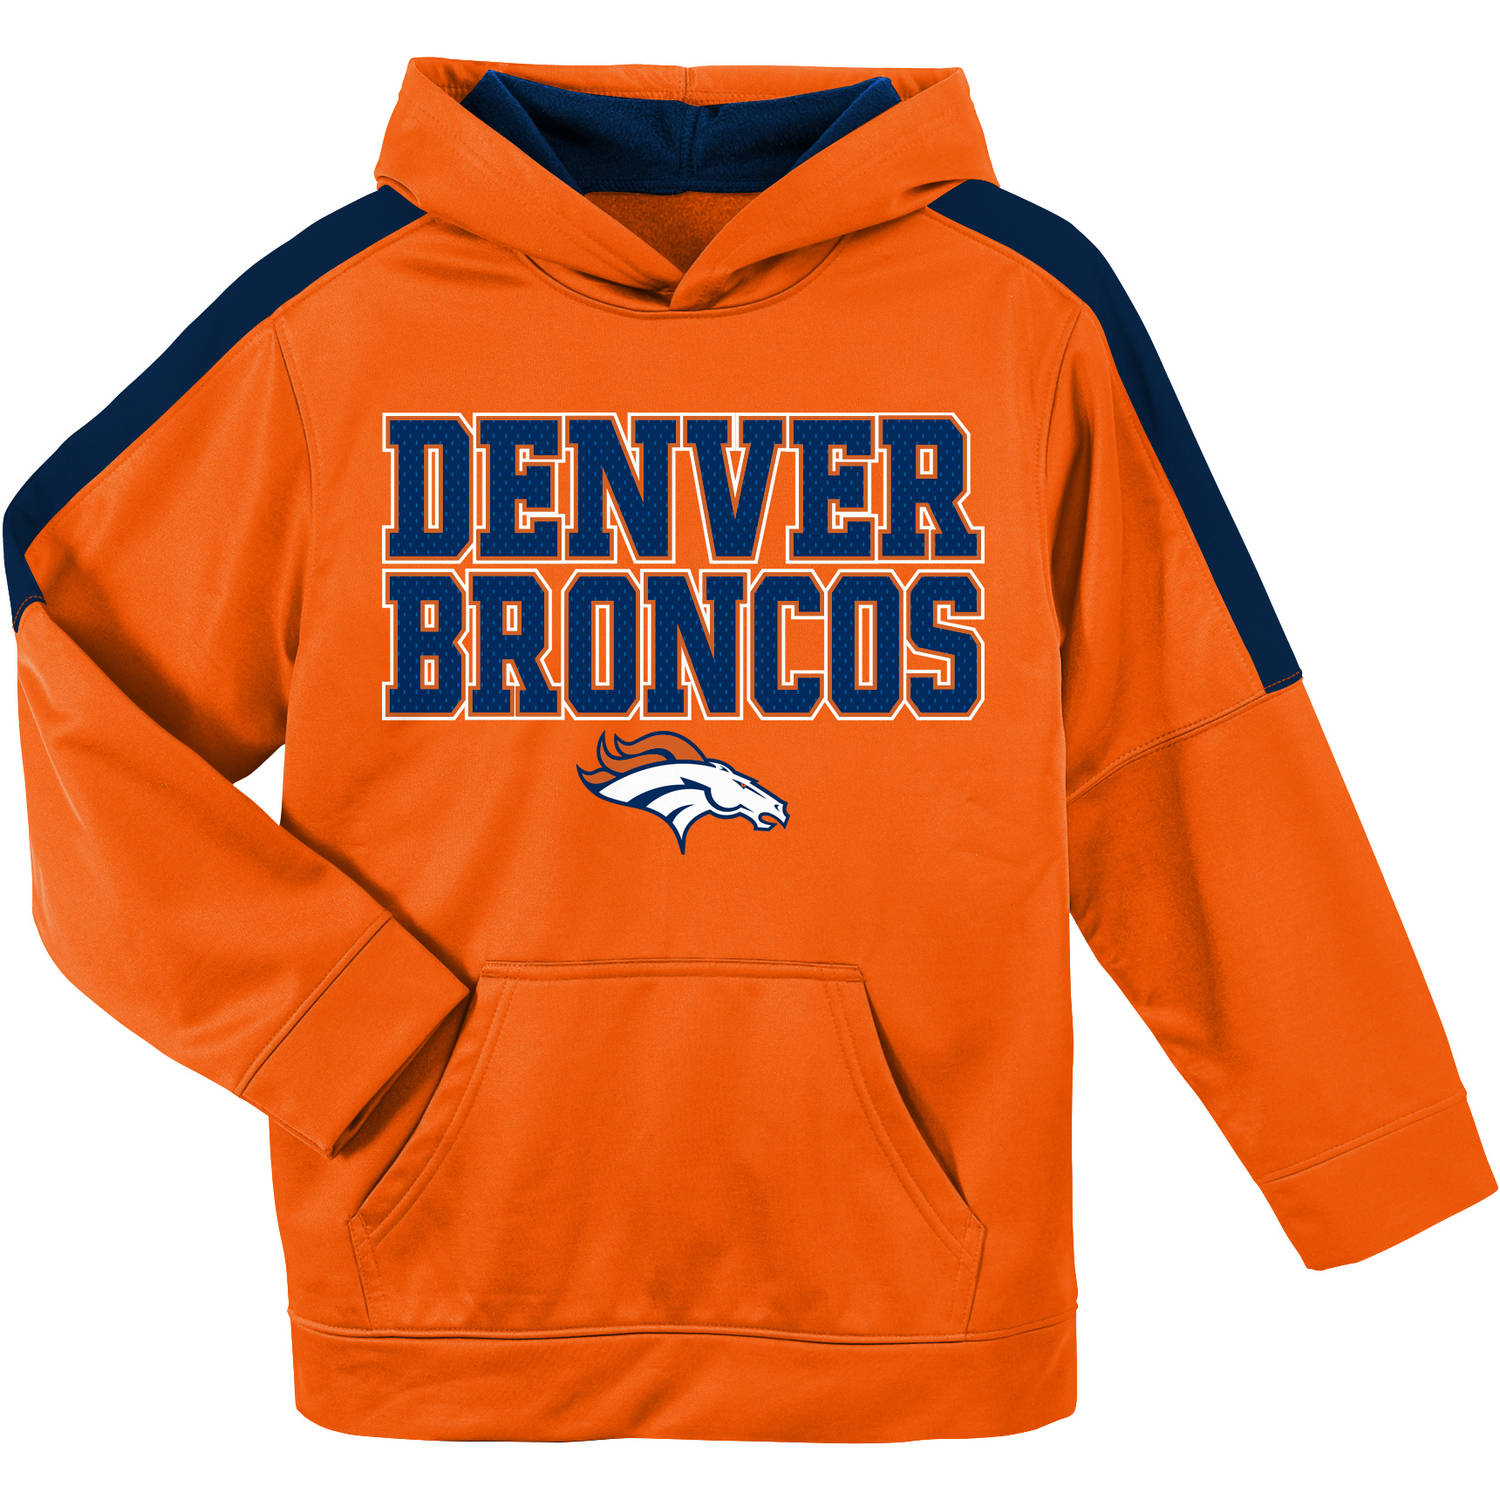 NFL Denver Broncos Youth Hooded Fleece Top